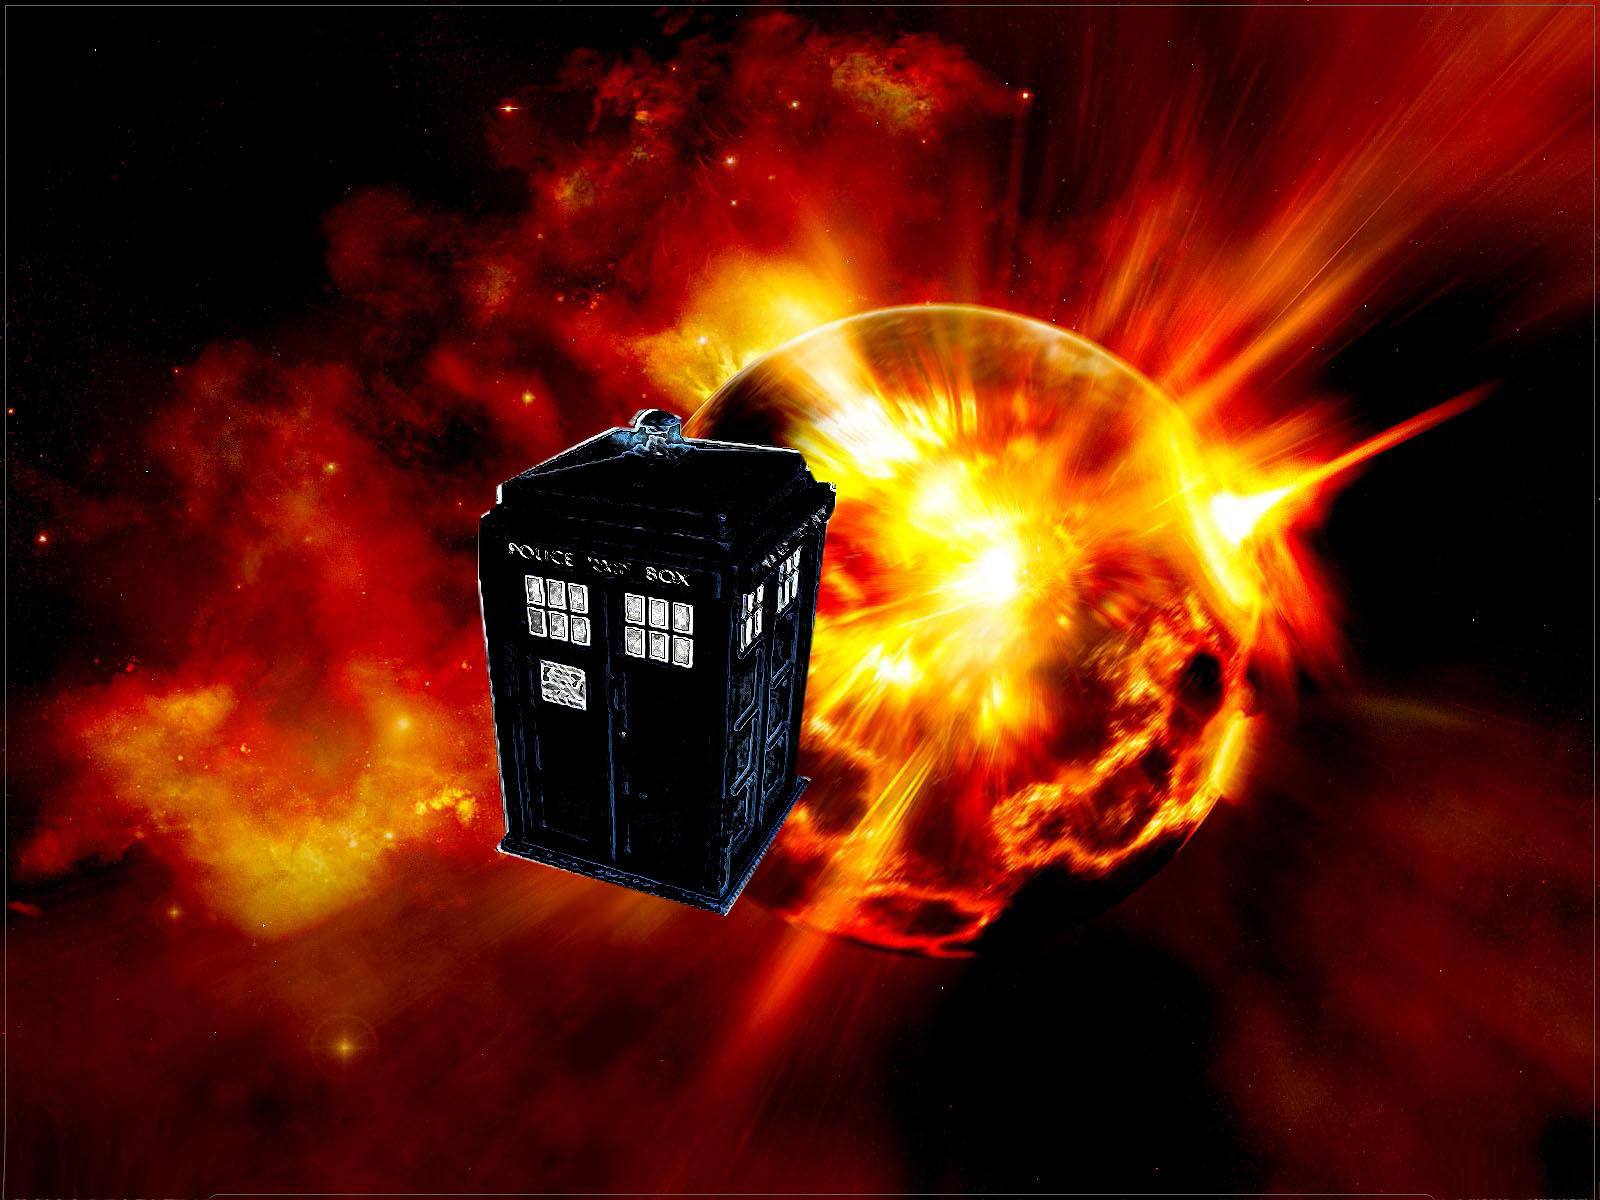 tardis images hd wallpaper - photo #46